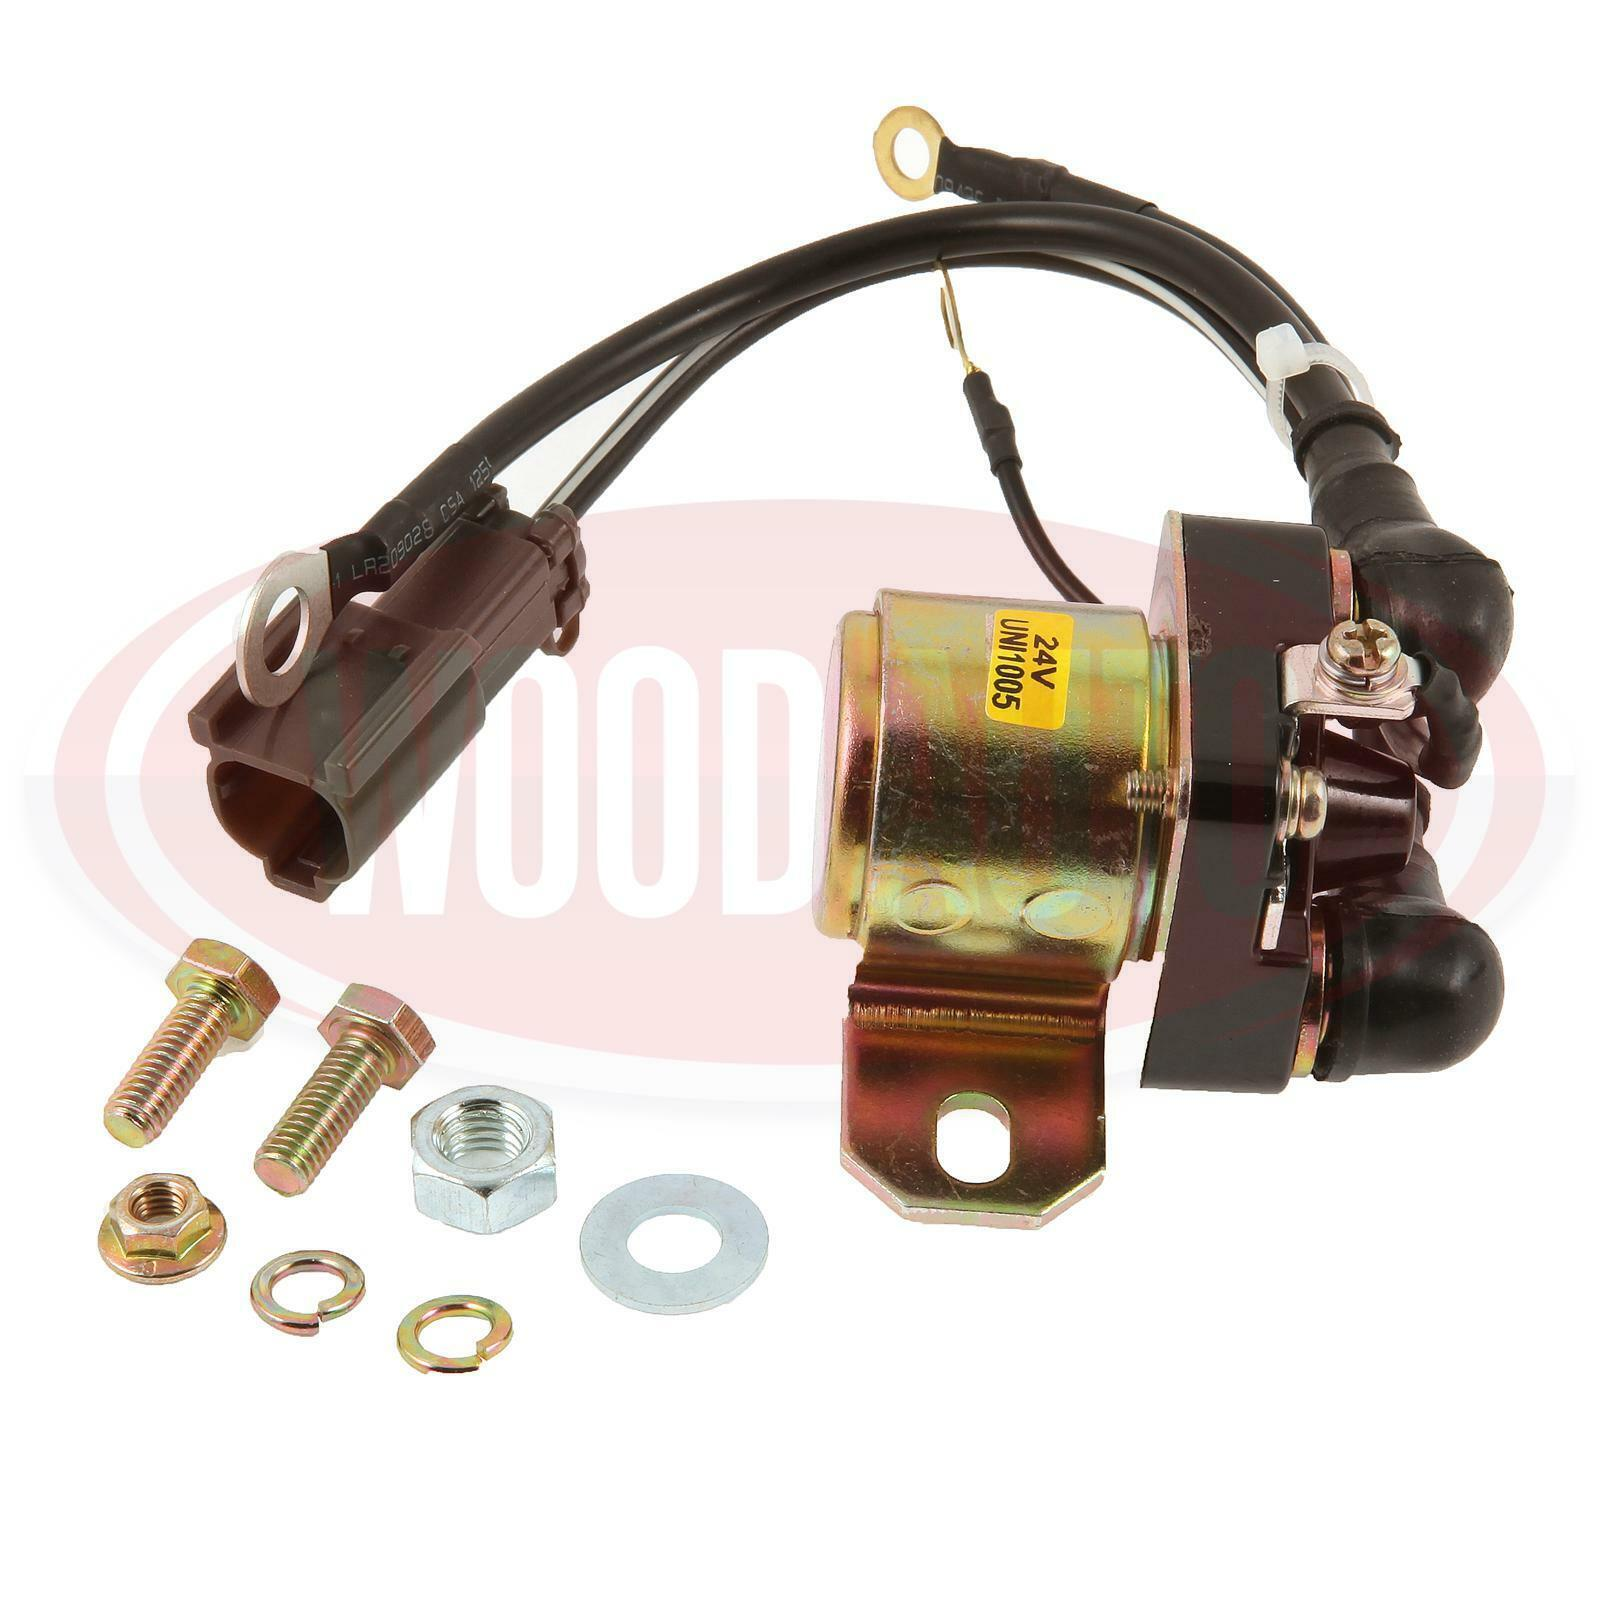 Details about STARTER SOLENOID RELAY SAFETY SWITCH MITSUBISHI 24V 4  TERMINAL WOOD AUTO EC43438